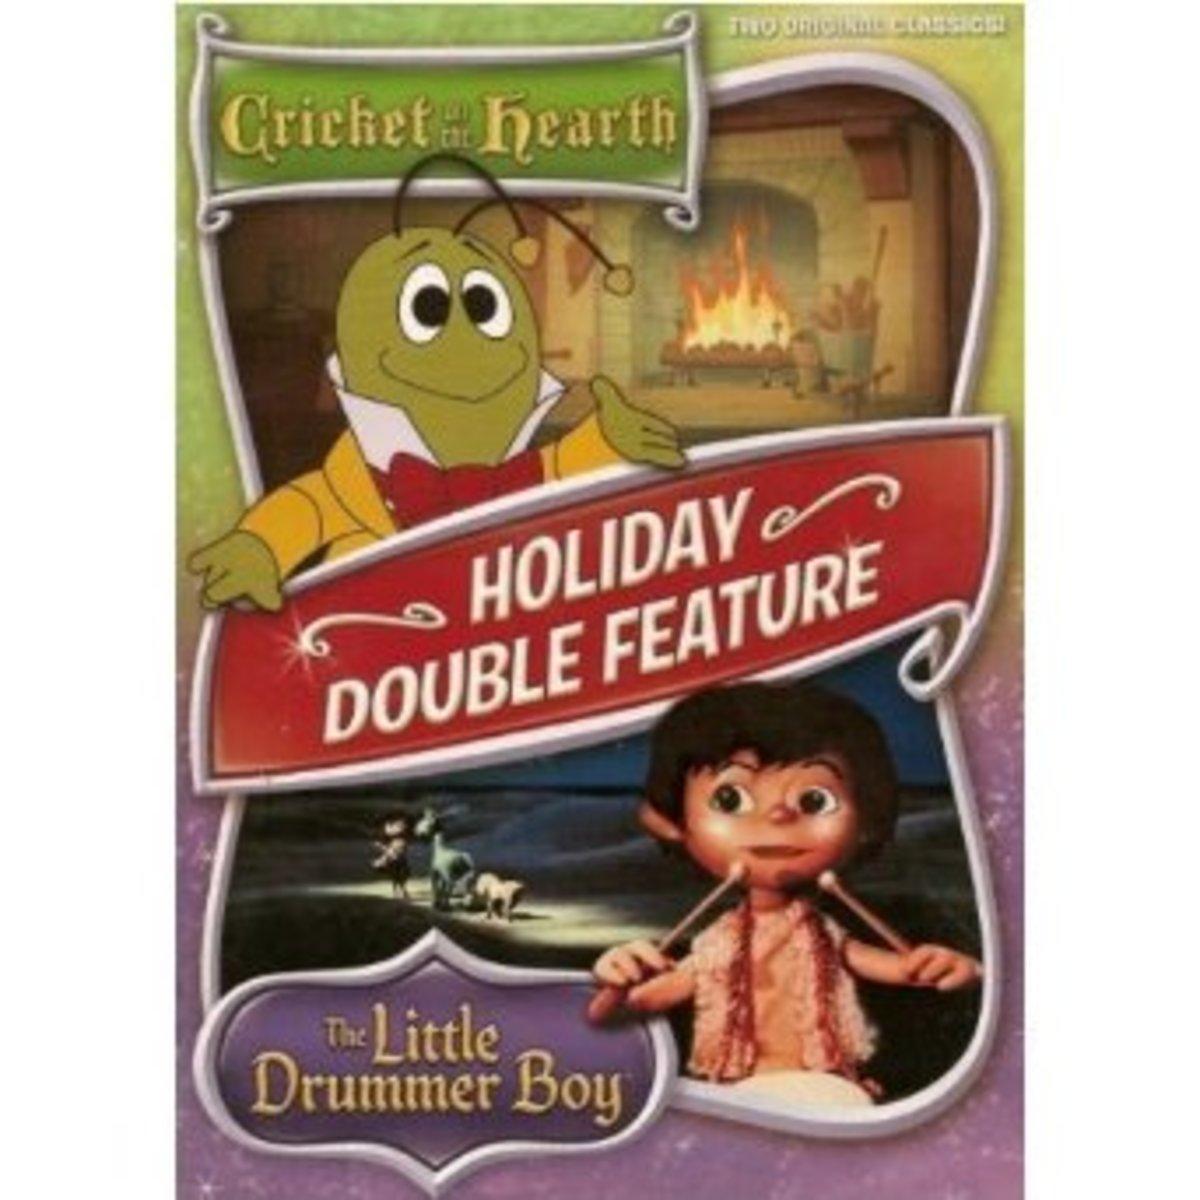 Rankin/Bass Retrospective - Part 6: Cricket on the Hearth / The Little Drummer Boy